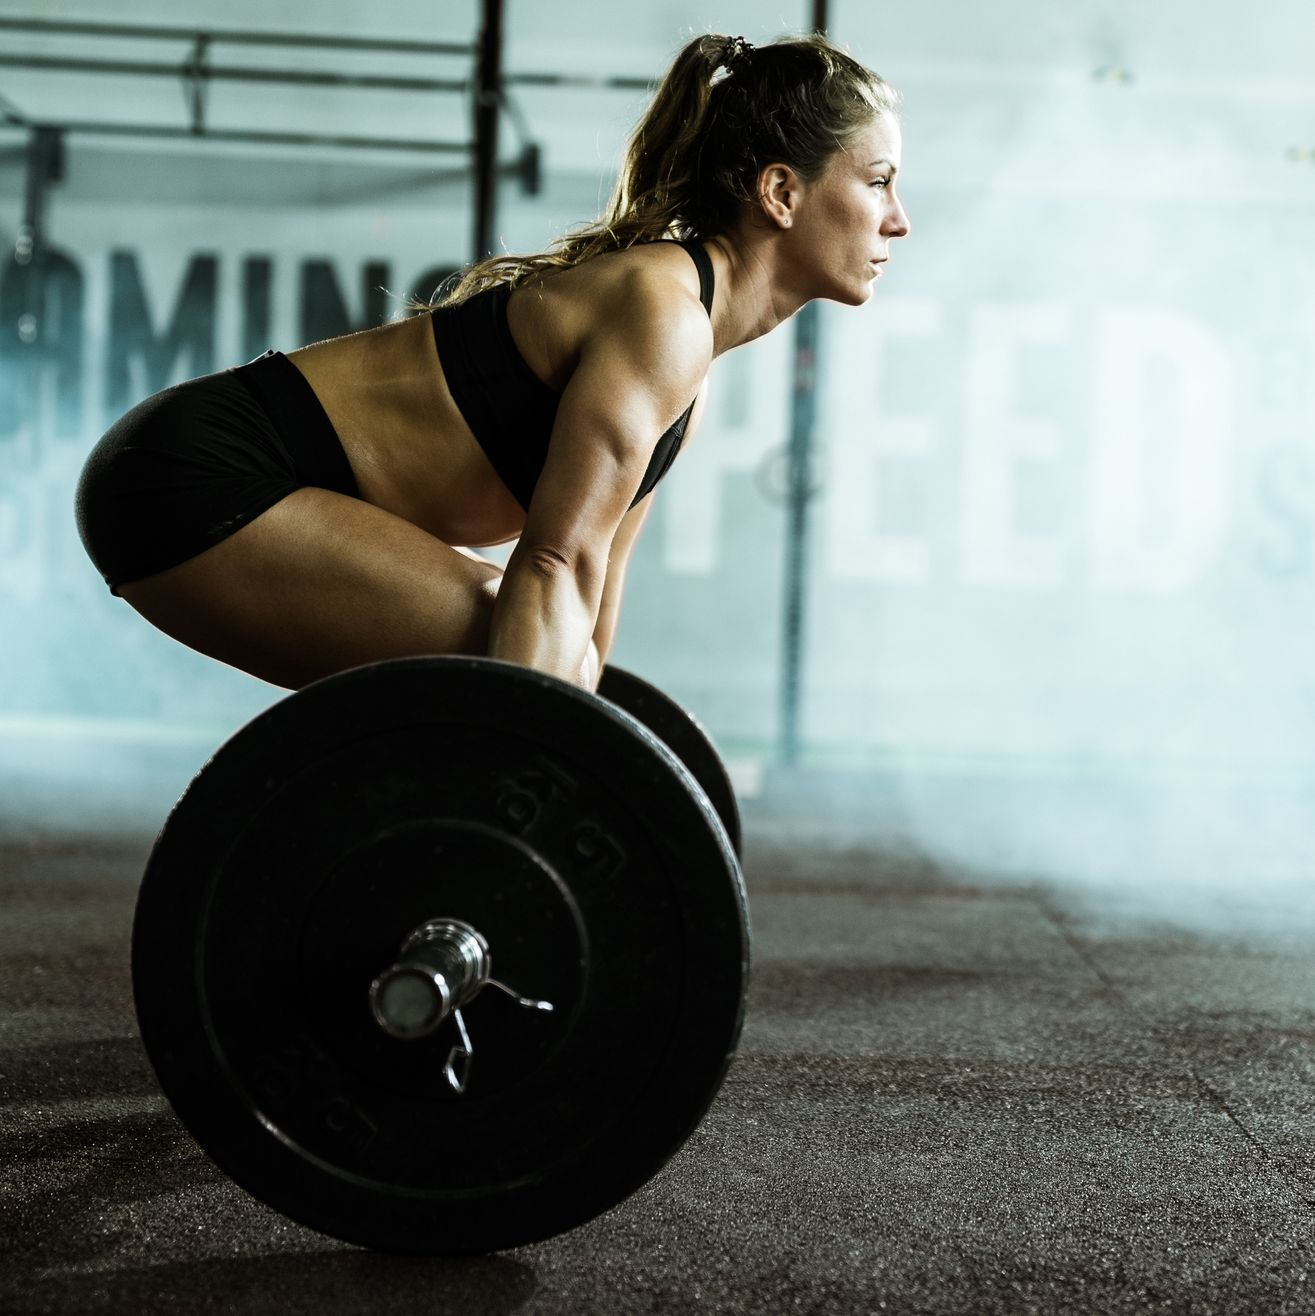 6 reasons why you should add deadlifts to your workout